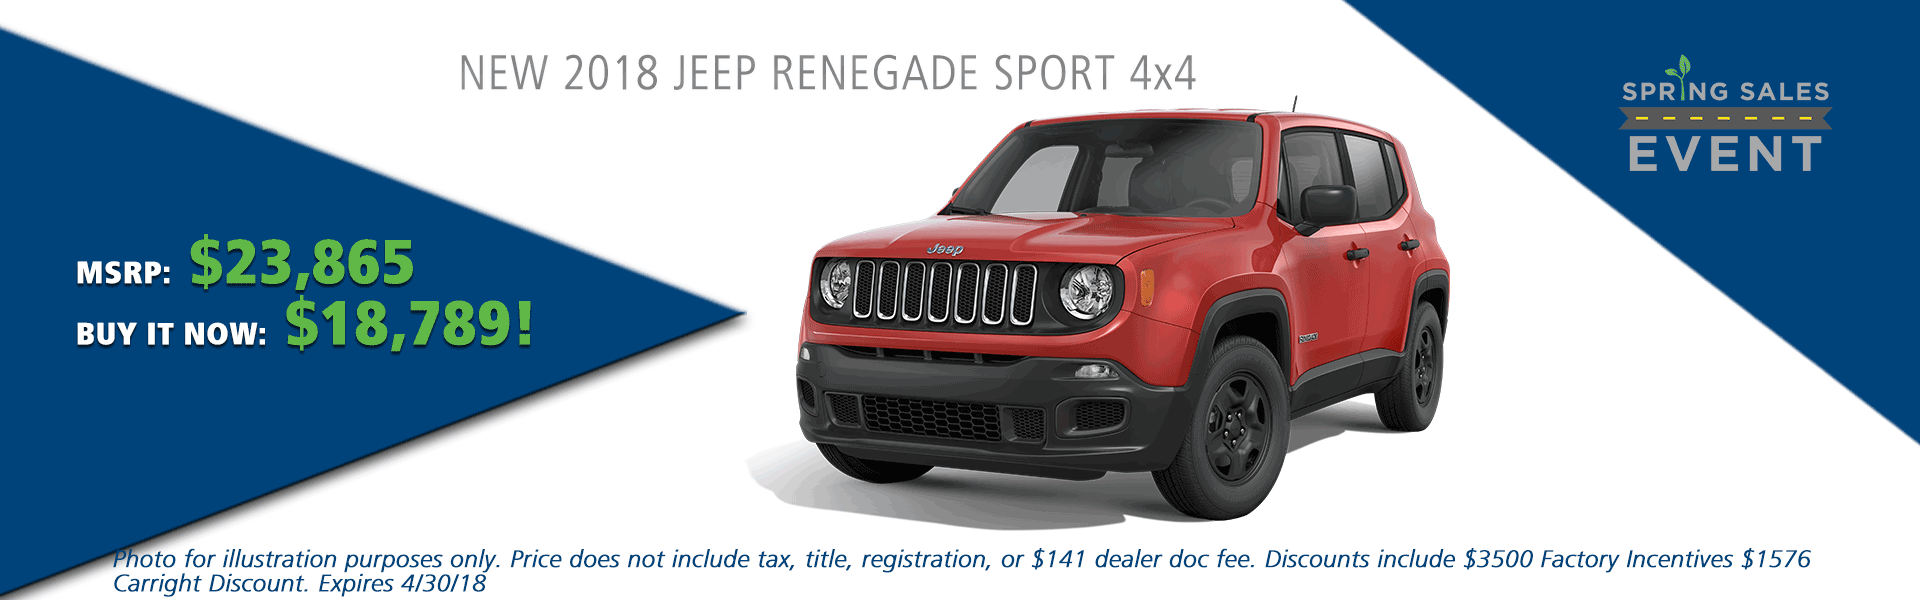 NEW 2018 JEEP RENEGADE SPORT 4X4 carright auto 5408 university blvd moon, pa 15108 chrysler dodge jeep ram